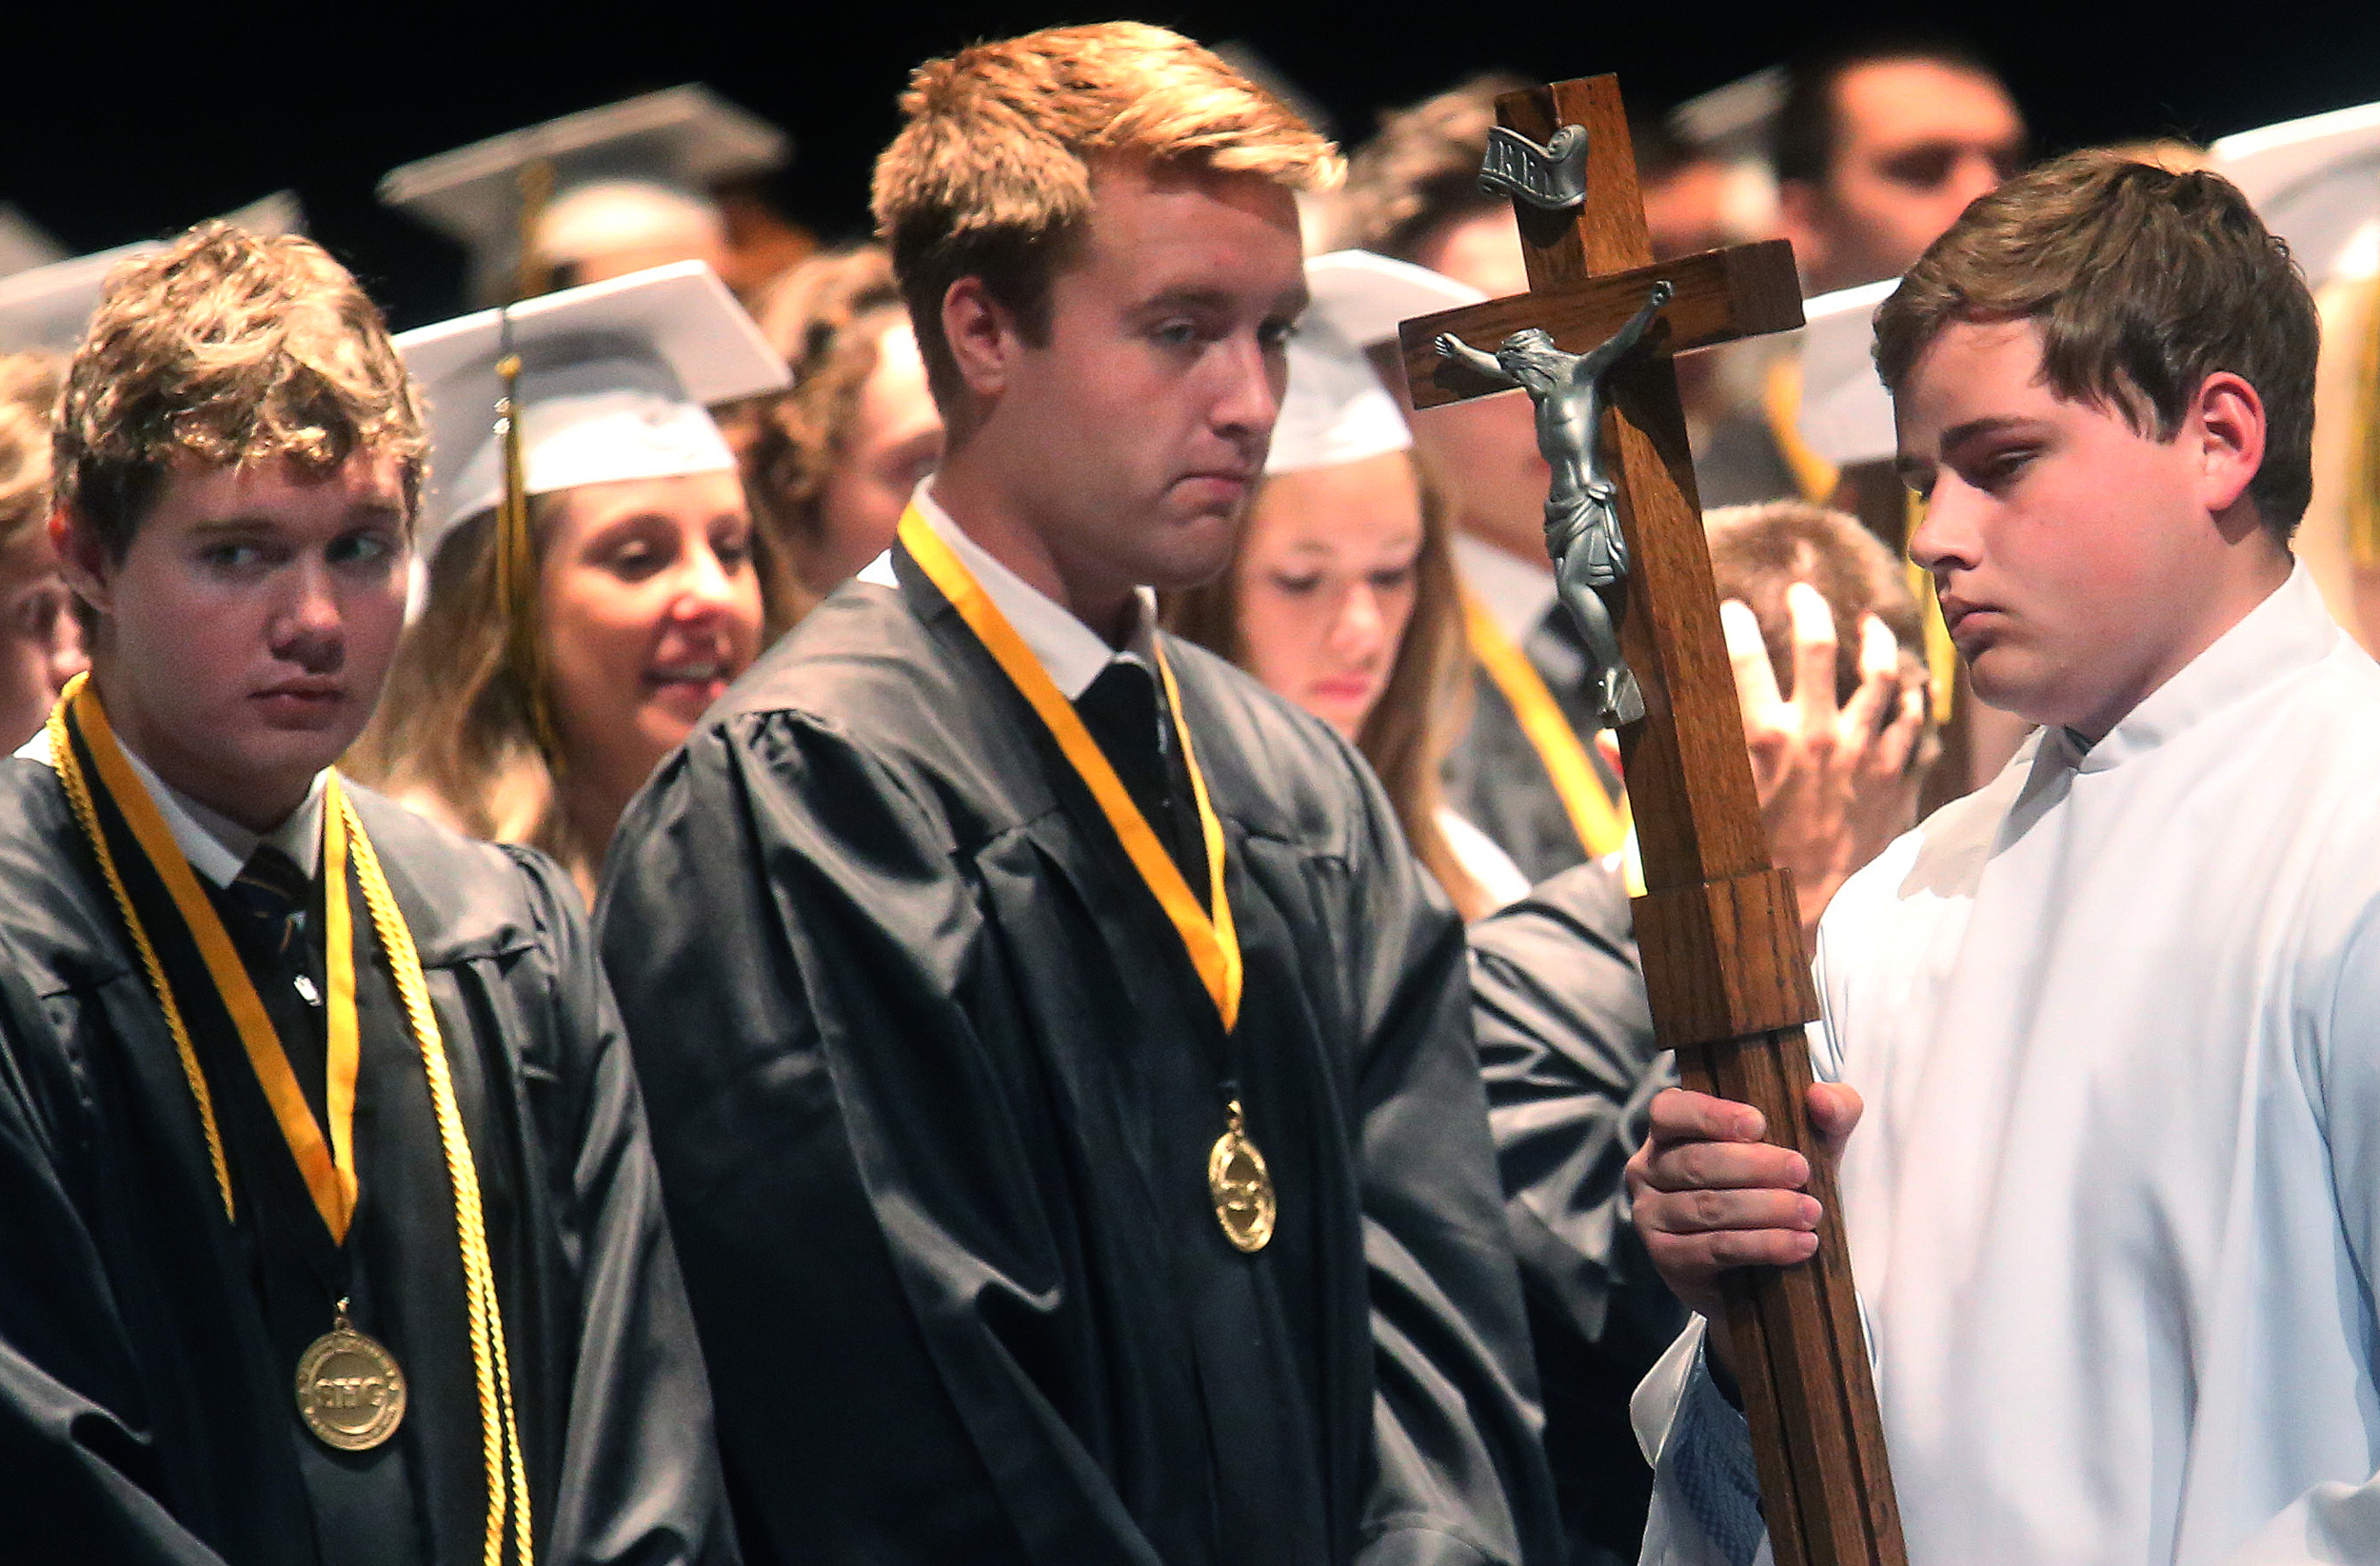 Mass was celebrated before the students received their diplomas. David Spencer/The State Journal-Register